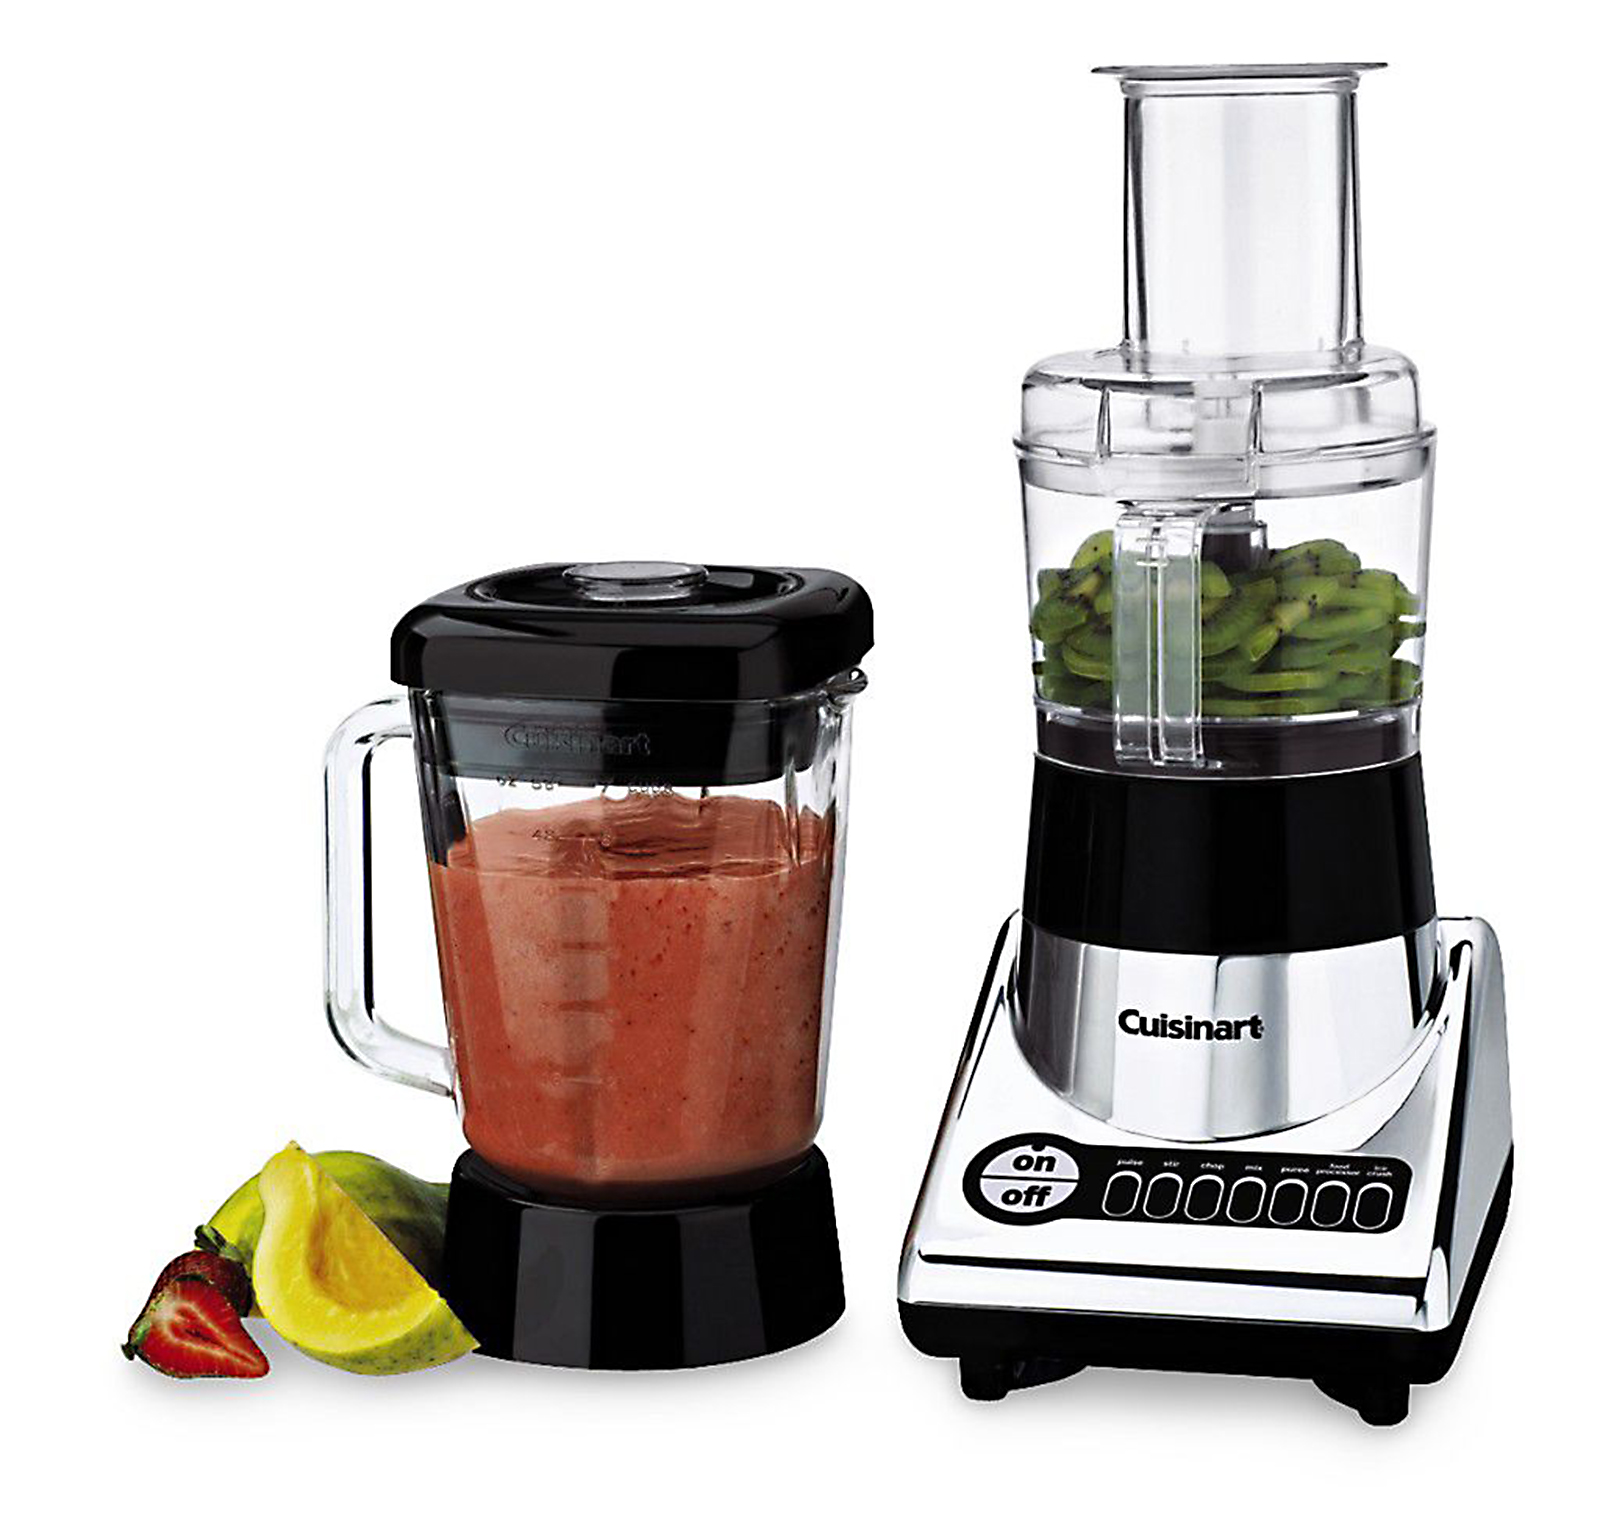 Food Processor Vs Blender ~ Juicers vs emulsifying blenders tasty island